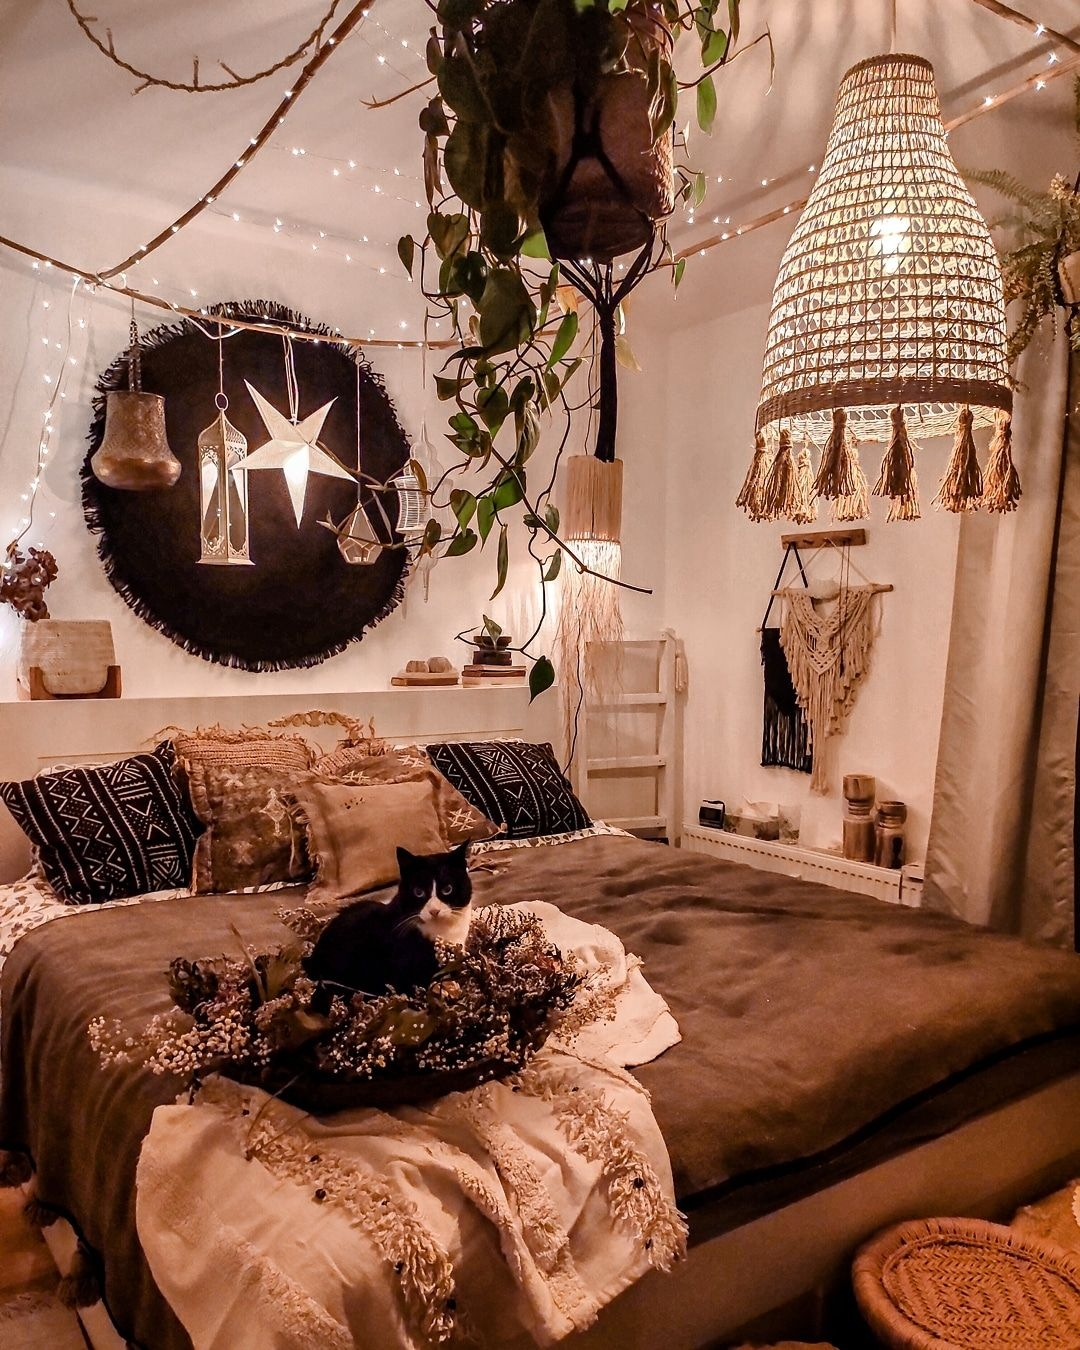 """Fanciable Cosy Home Decorating Ideas On Artistic Natural Boho Interior On Instagram """"ᴬᵈᵛᵉʳᵗᶦˢᵉᵐᵉⁿᵗ On Cosy Home Decorating Ideas"""